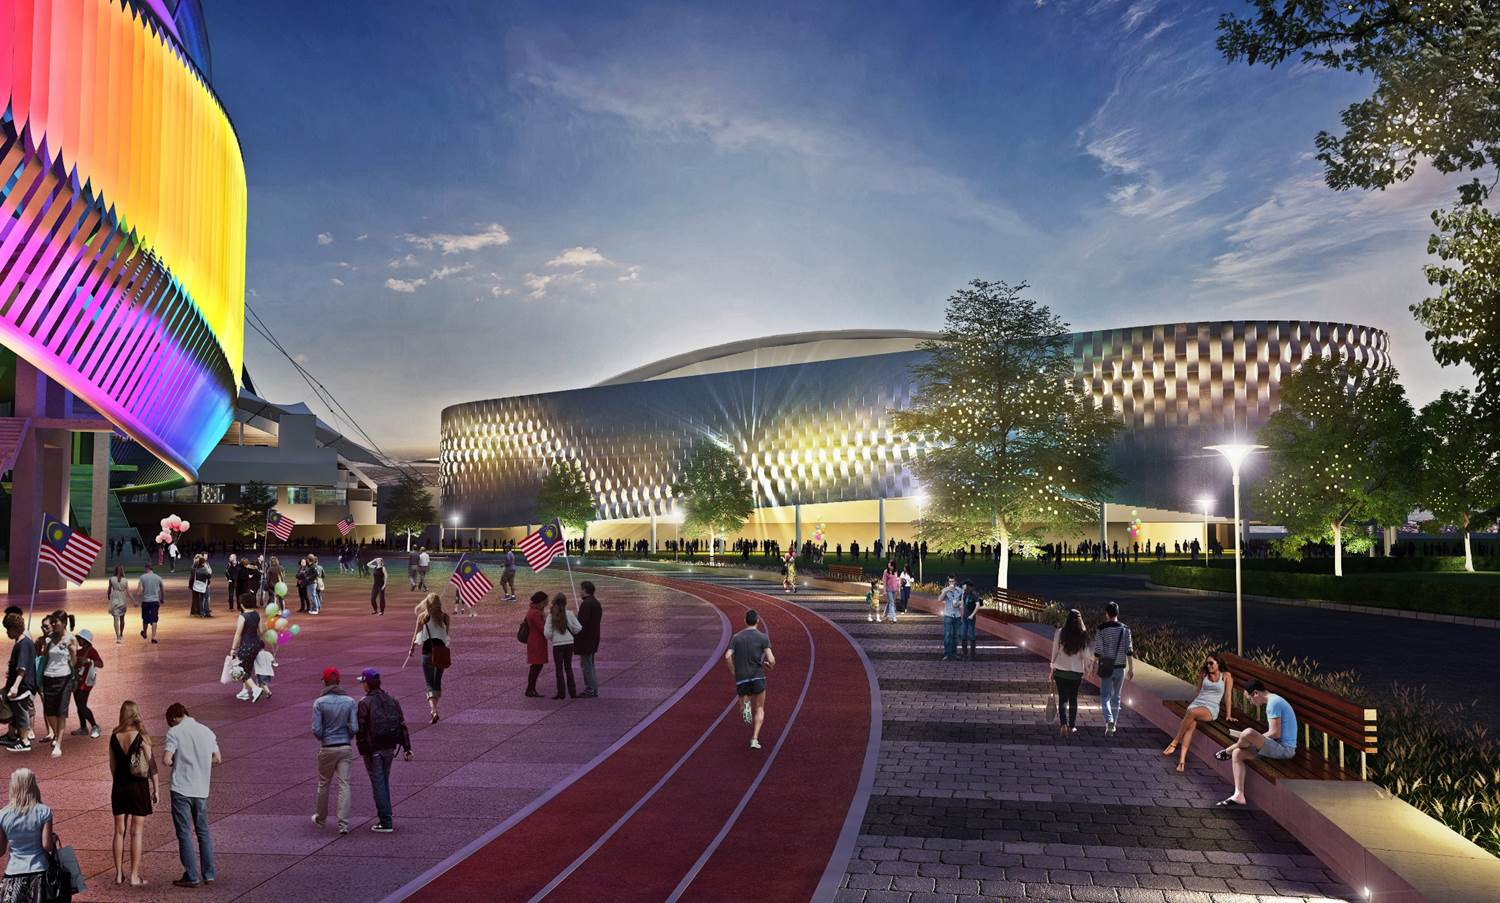 Image from KL Sports City